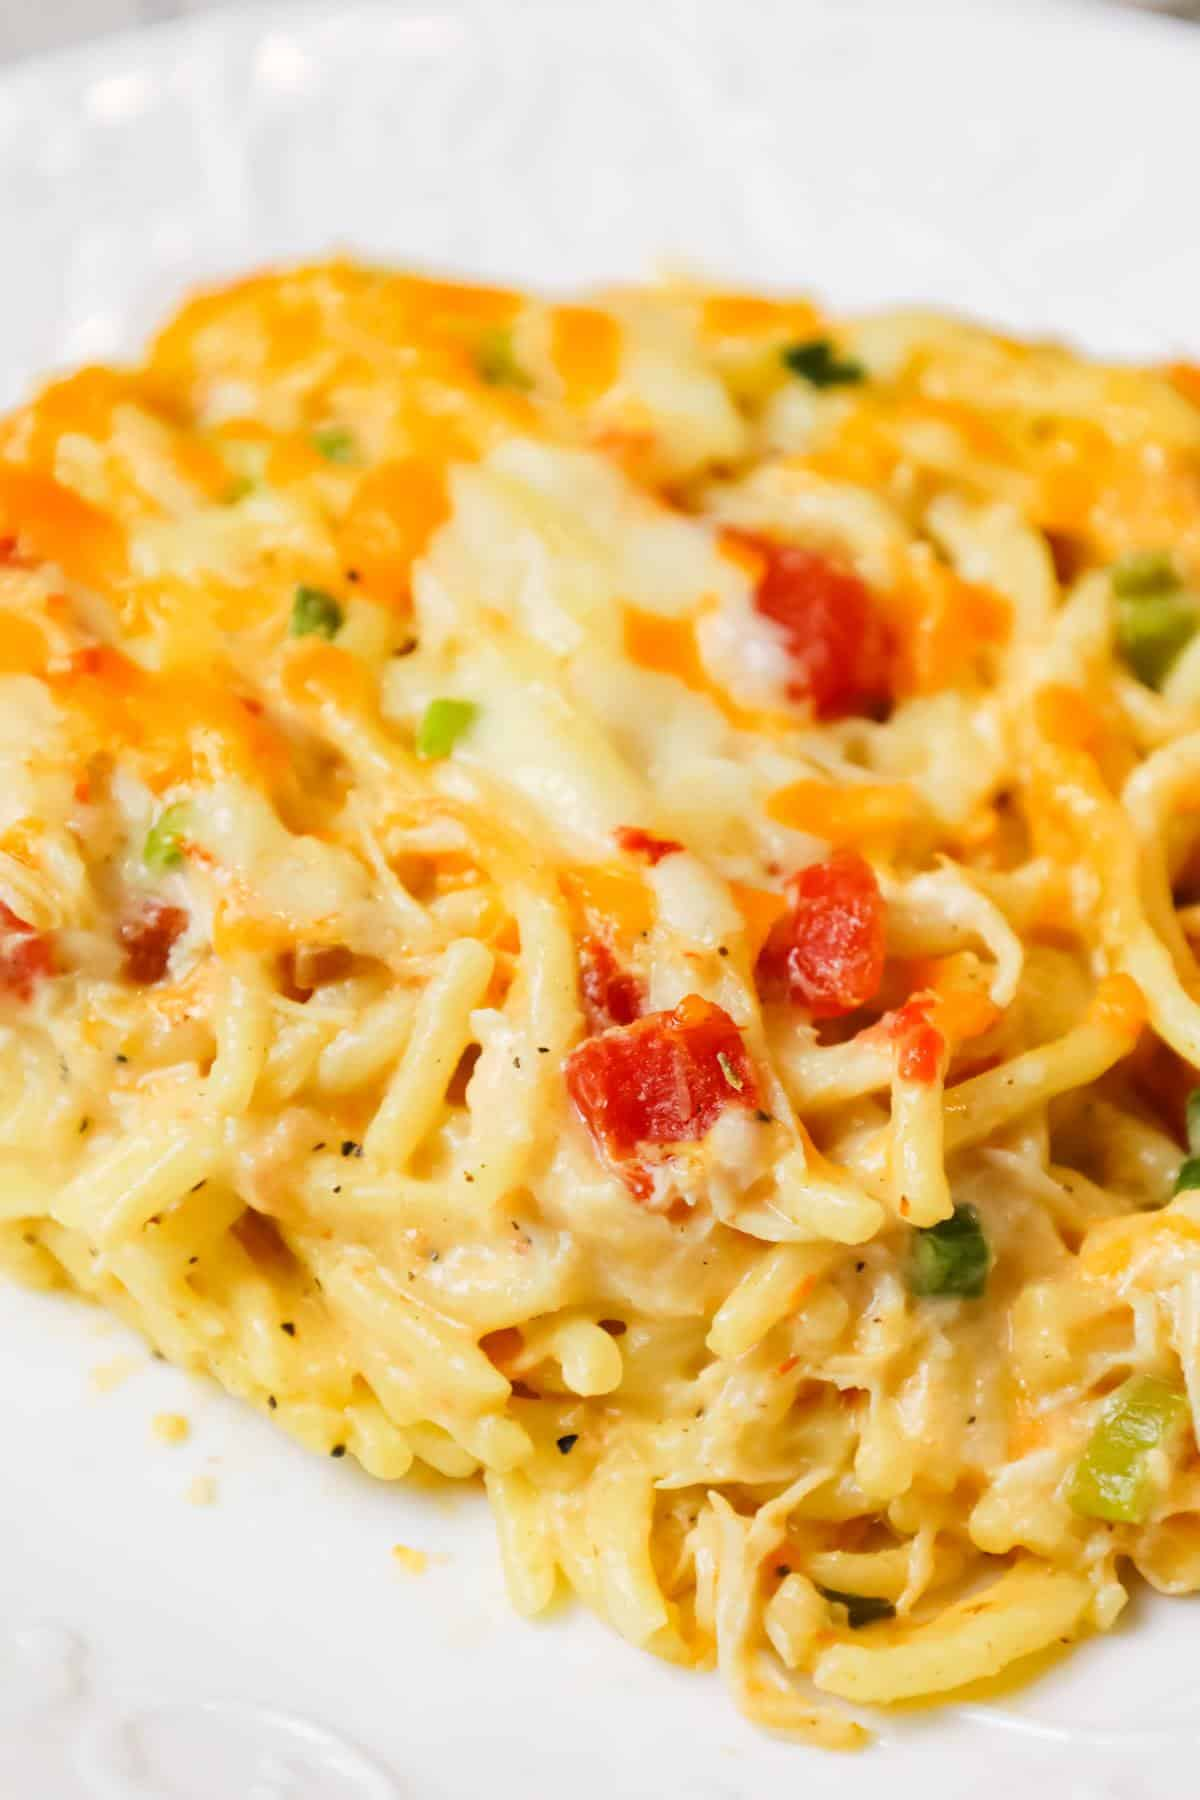 Chicken Spaghetti with Rotel is a delicious baked spaghetti recipe with a creamy sauce loaded with shredded chicken, Rotel diced tomatoes and green chilies, shredded cheese and chopped green onions.